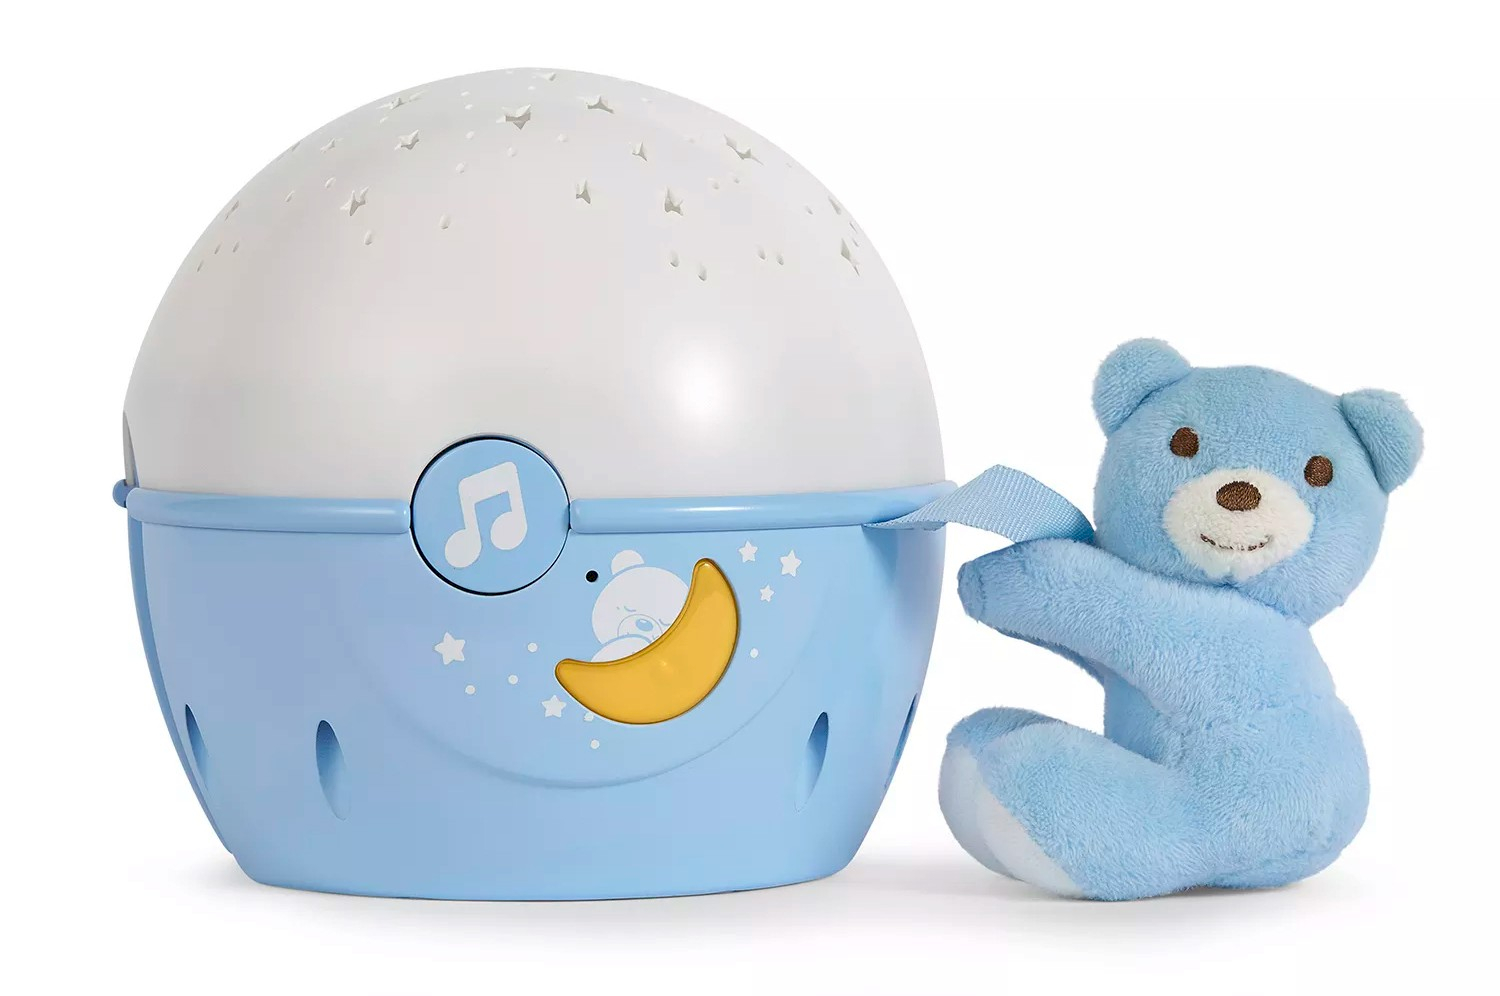 Chicco Projecteur de Lit Next 2 Star Bleu